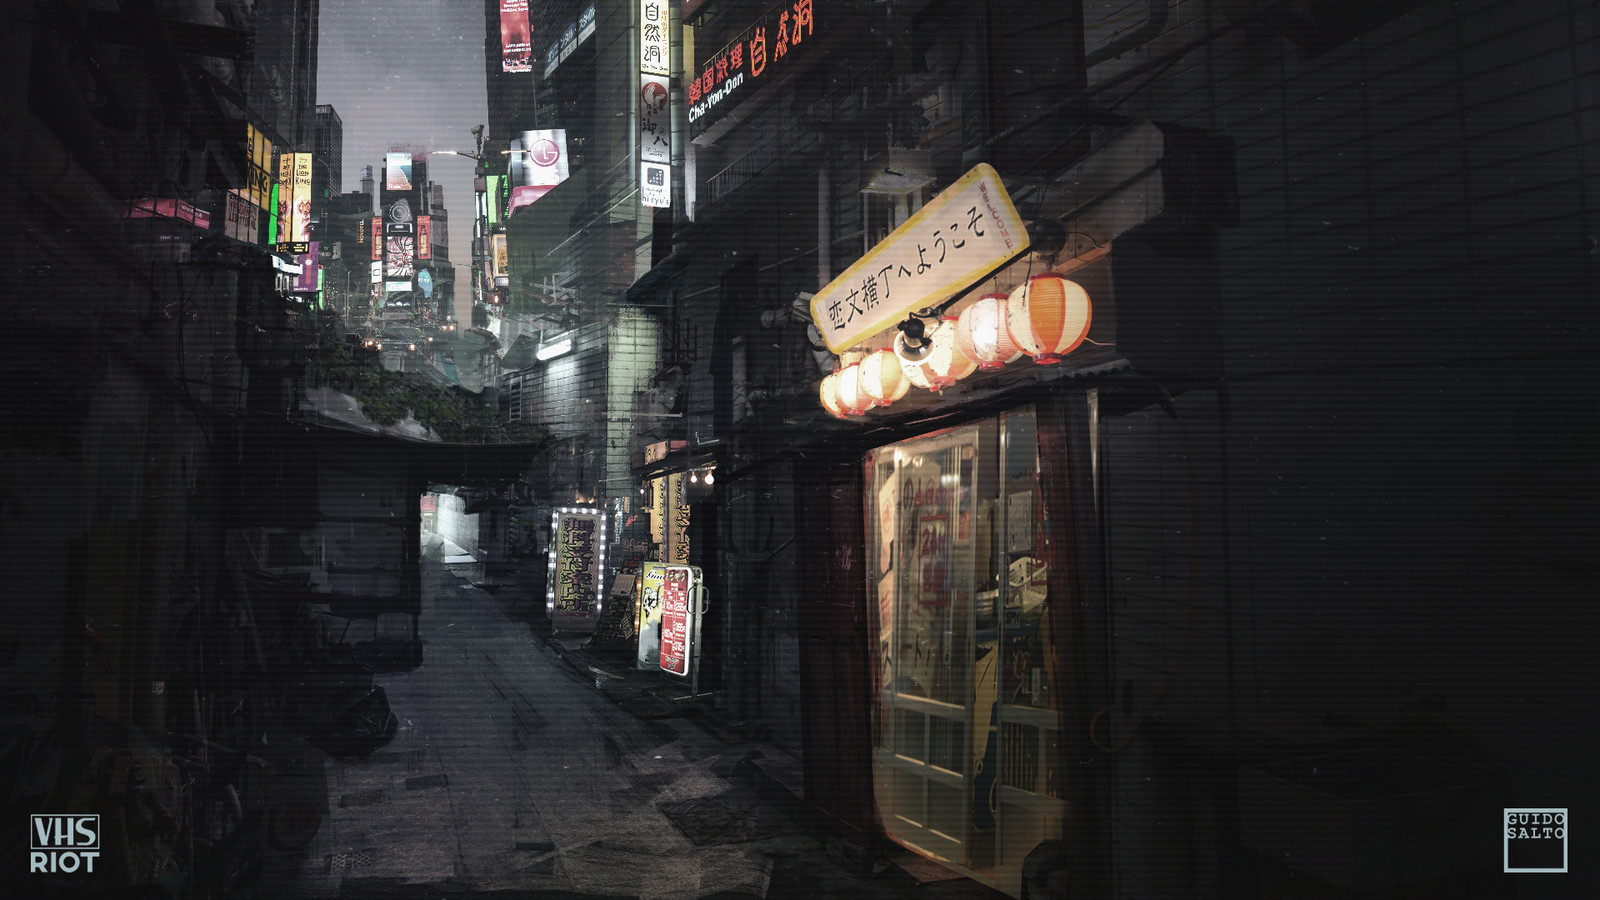 Quick Photobash of a street Level View